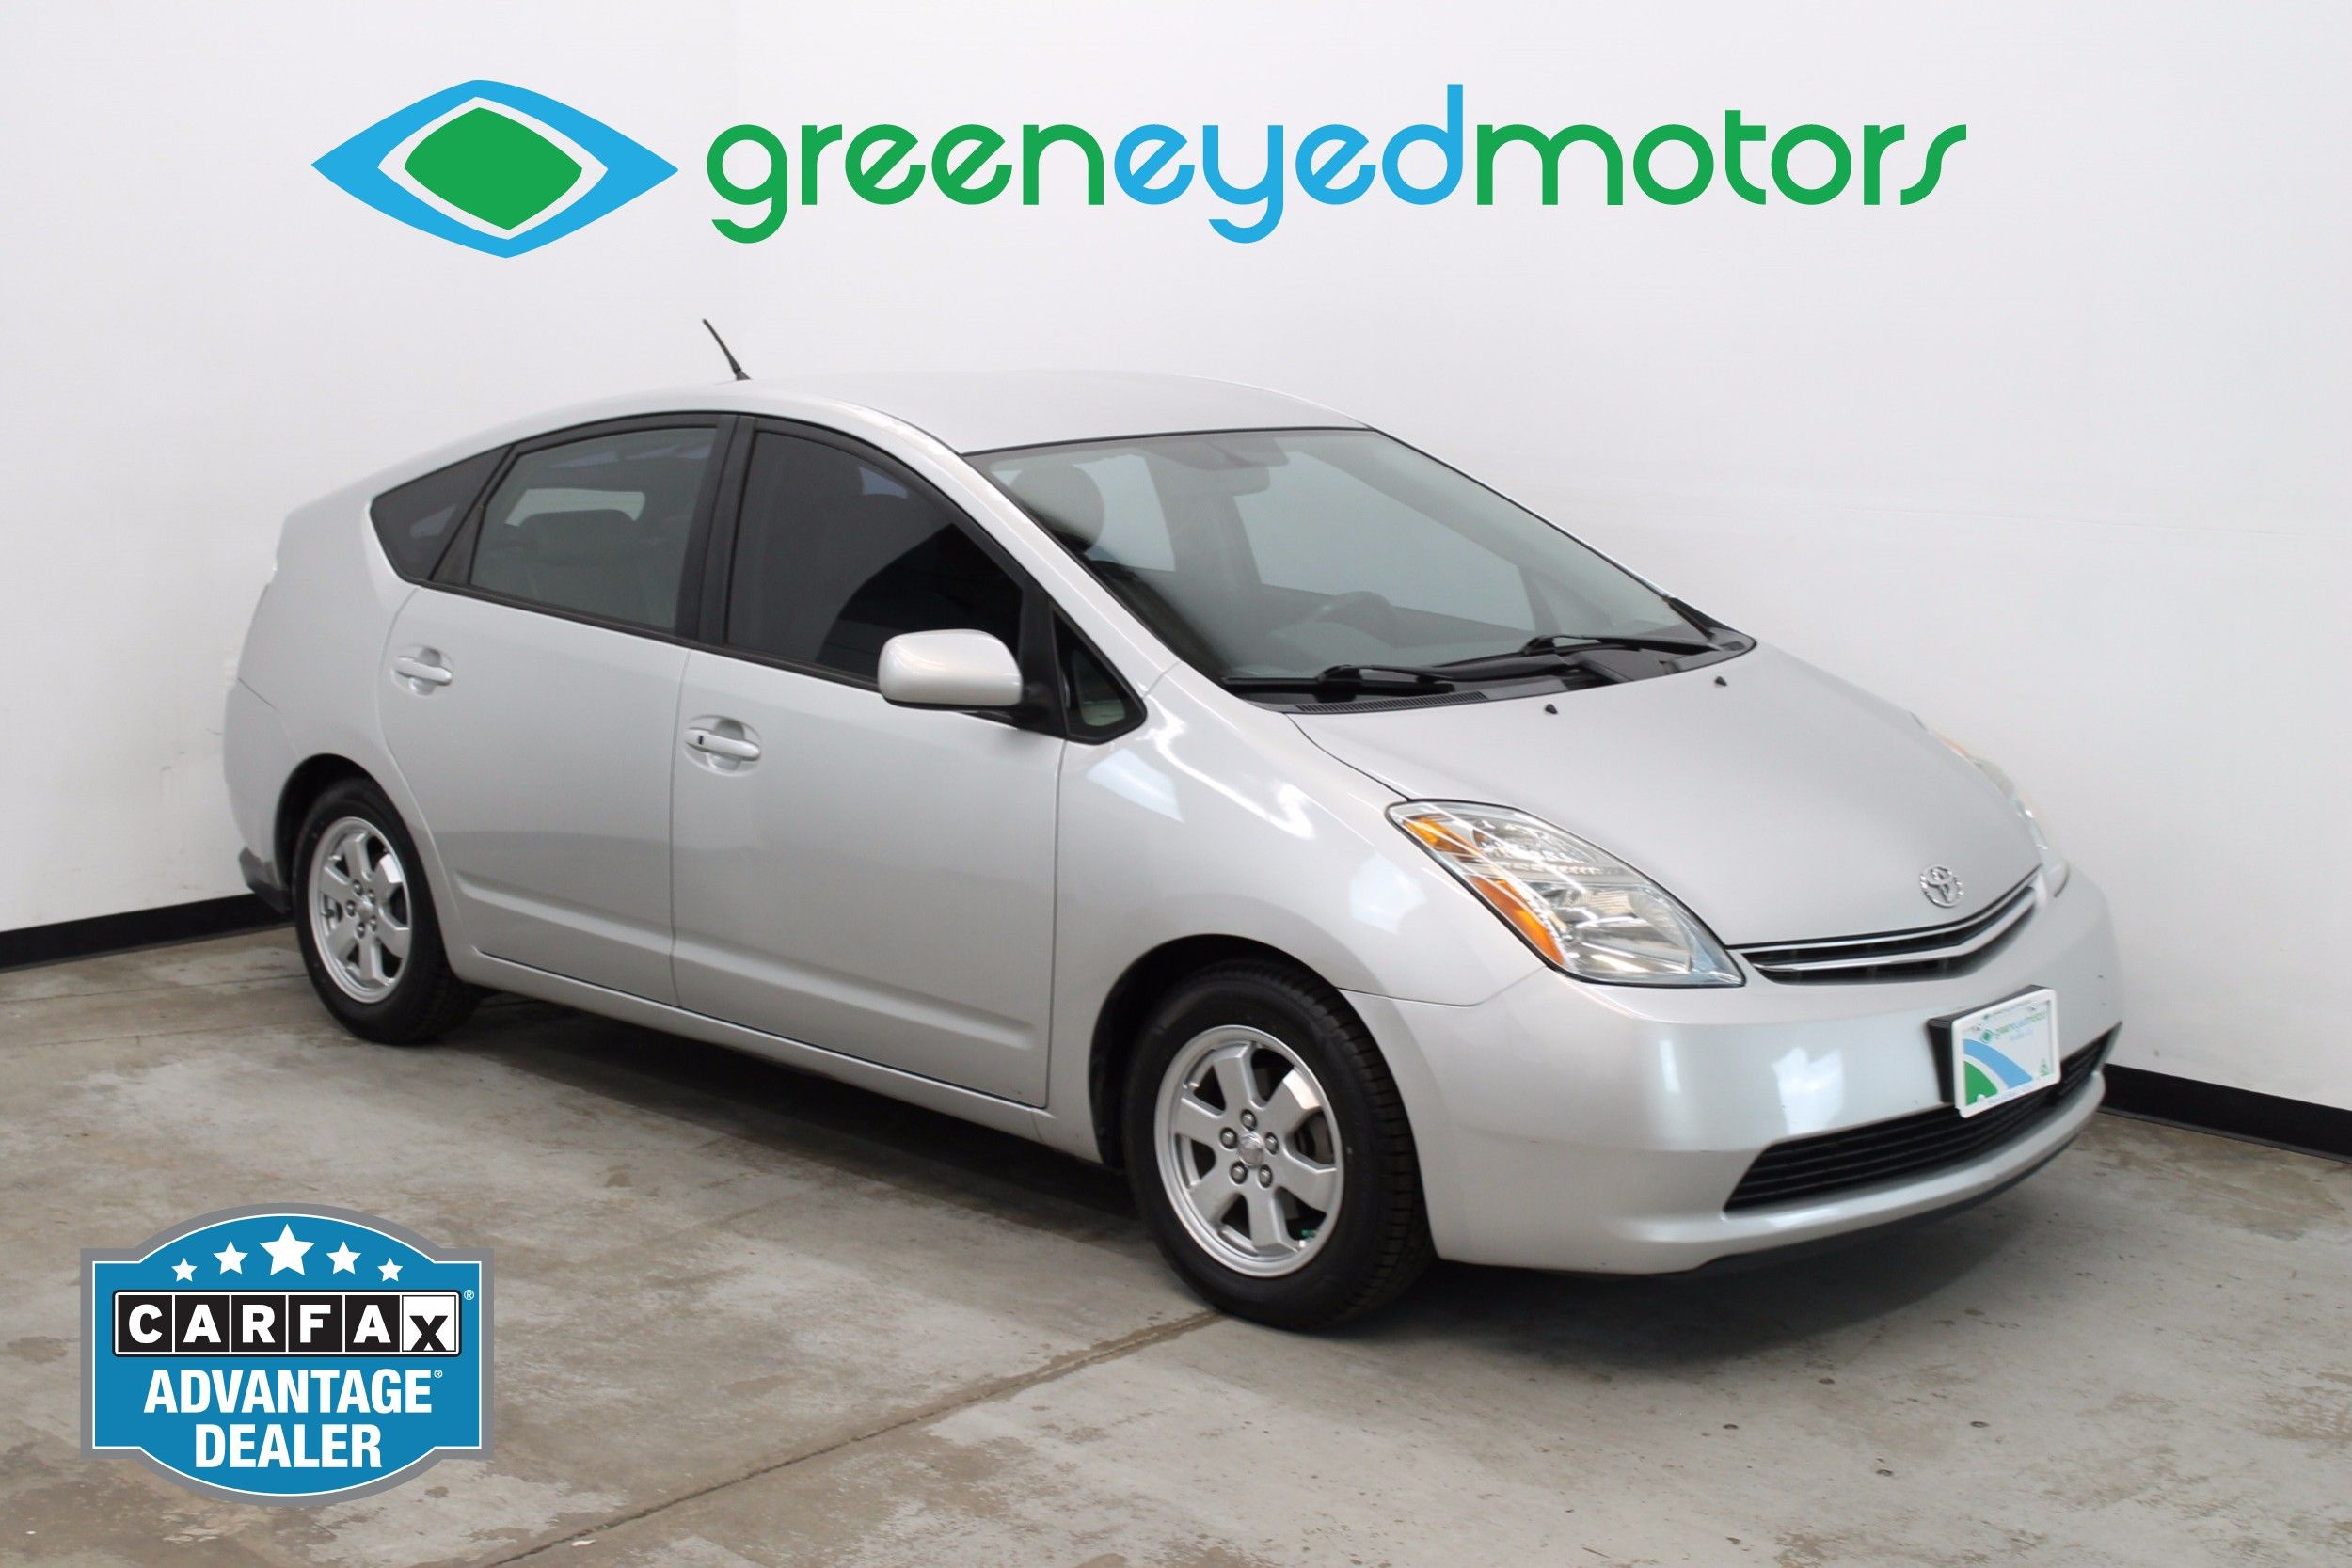 2006 Toyota Prius. 50+ MPG   Rear View Camera   Brand New Tires!!